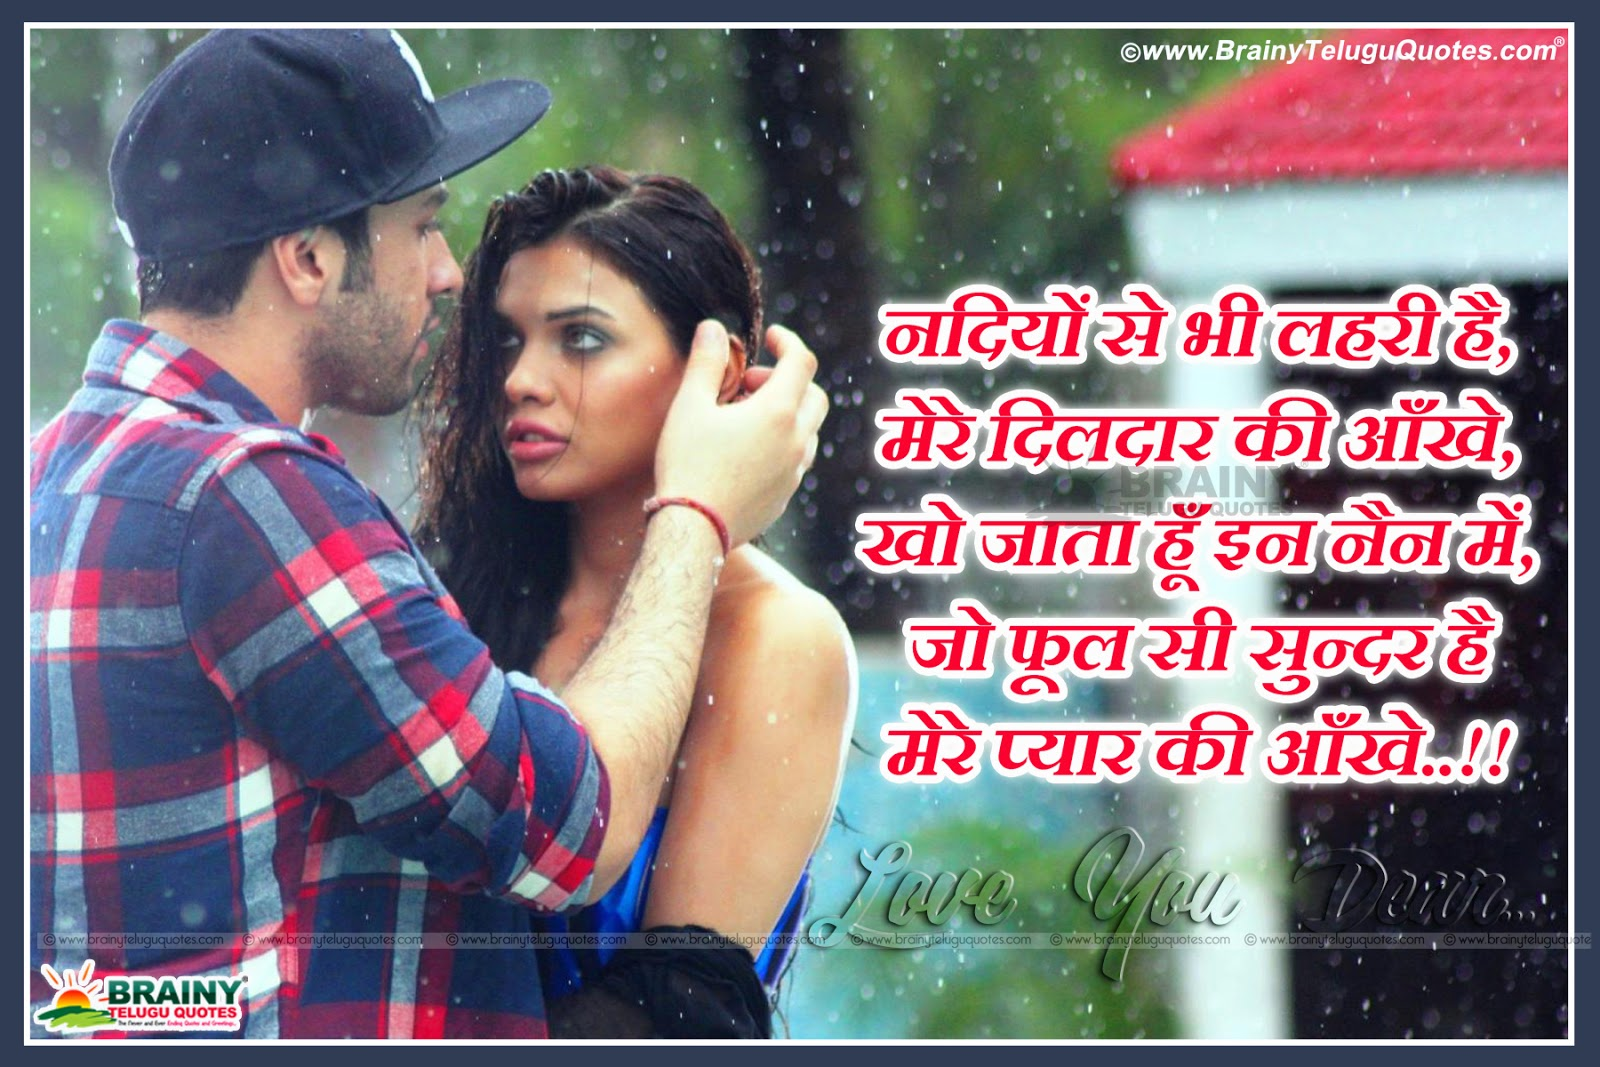 Images Of Love Couples In Rain With Quotes Hindi